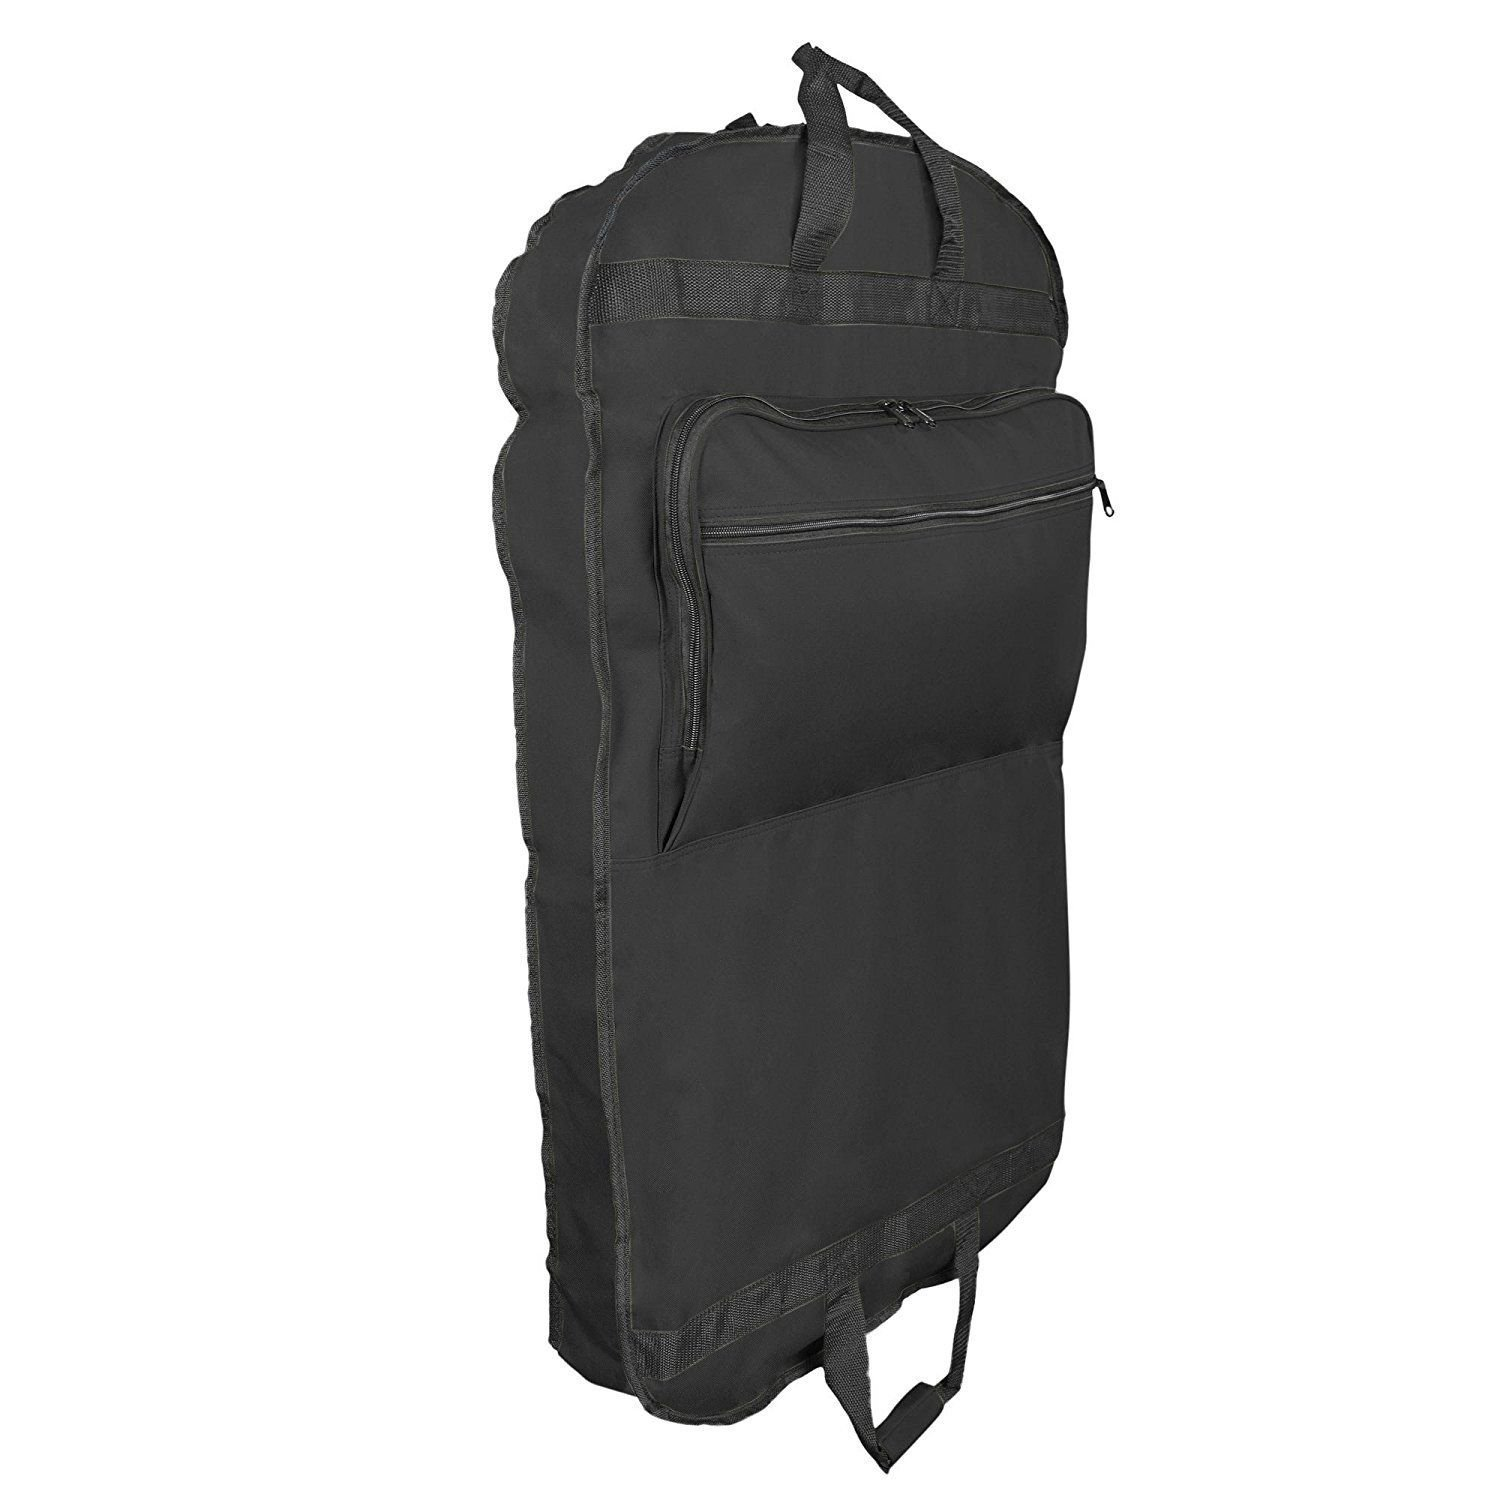 940b9a70ccbb Cheap Garment Bag For Men, find Garment Bag For Men deals on line at ...